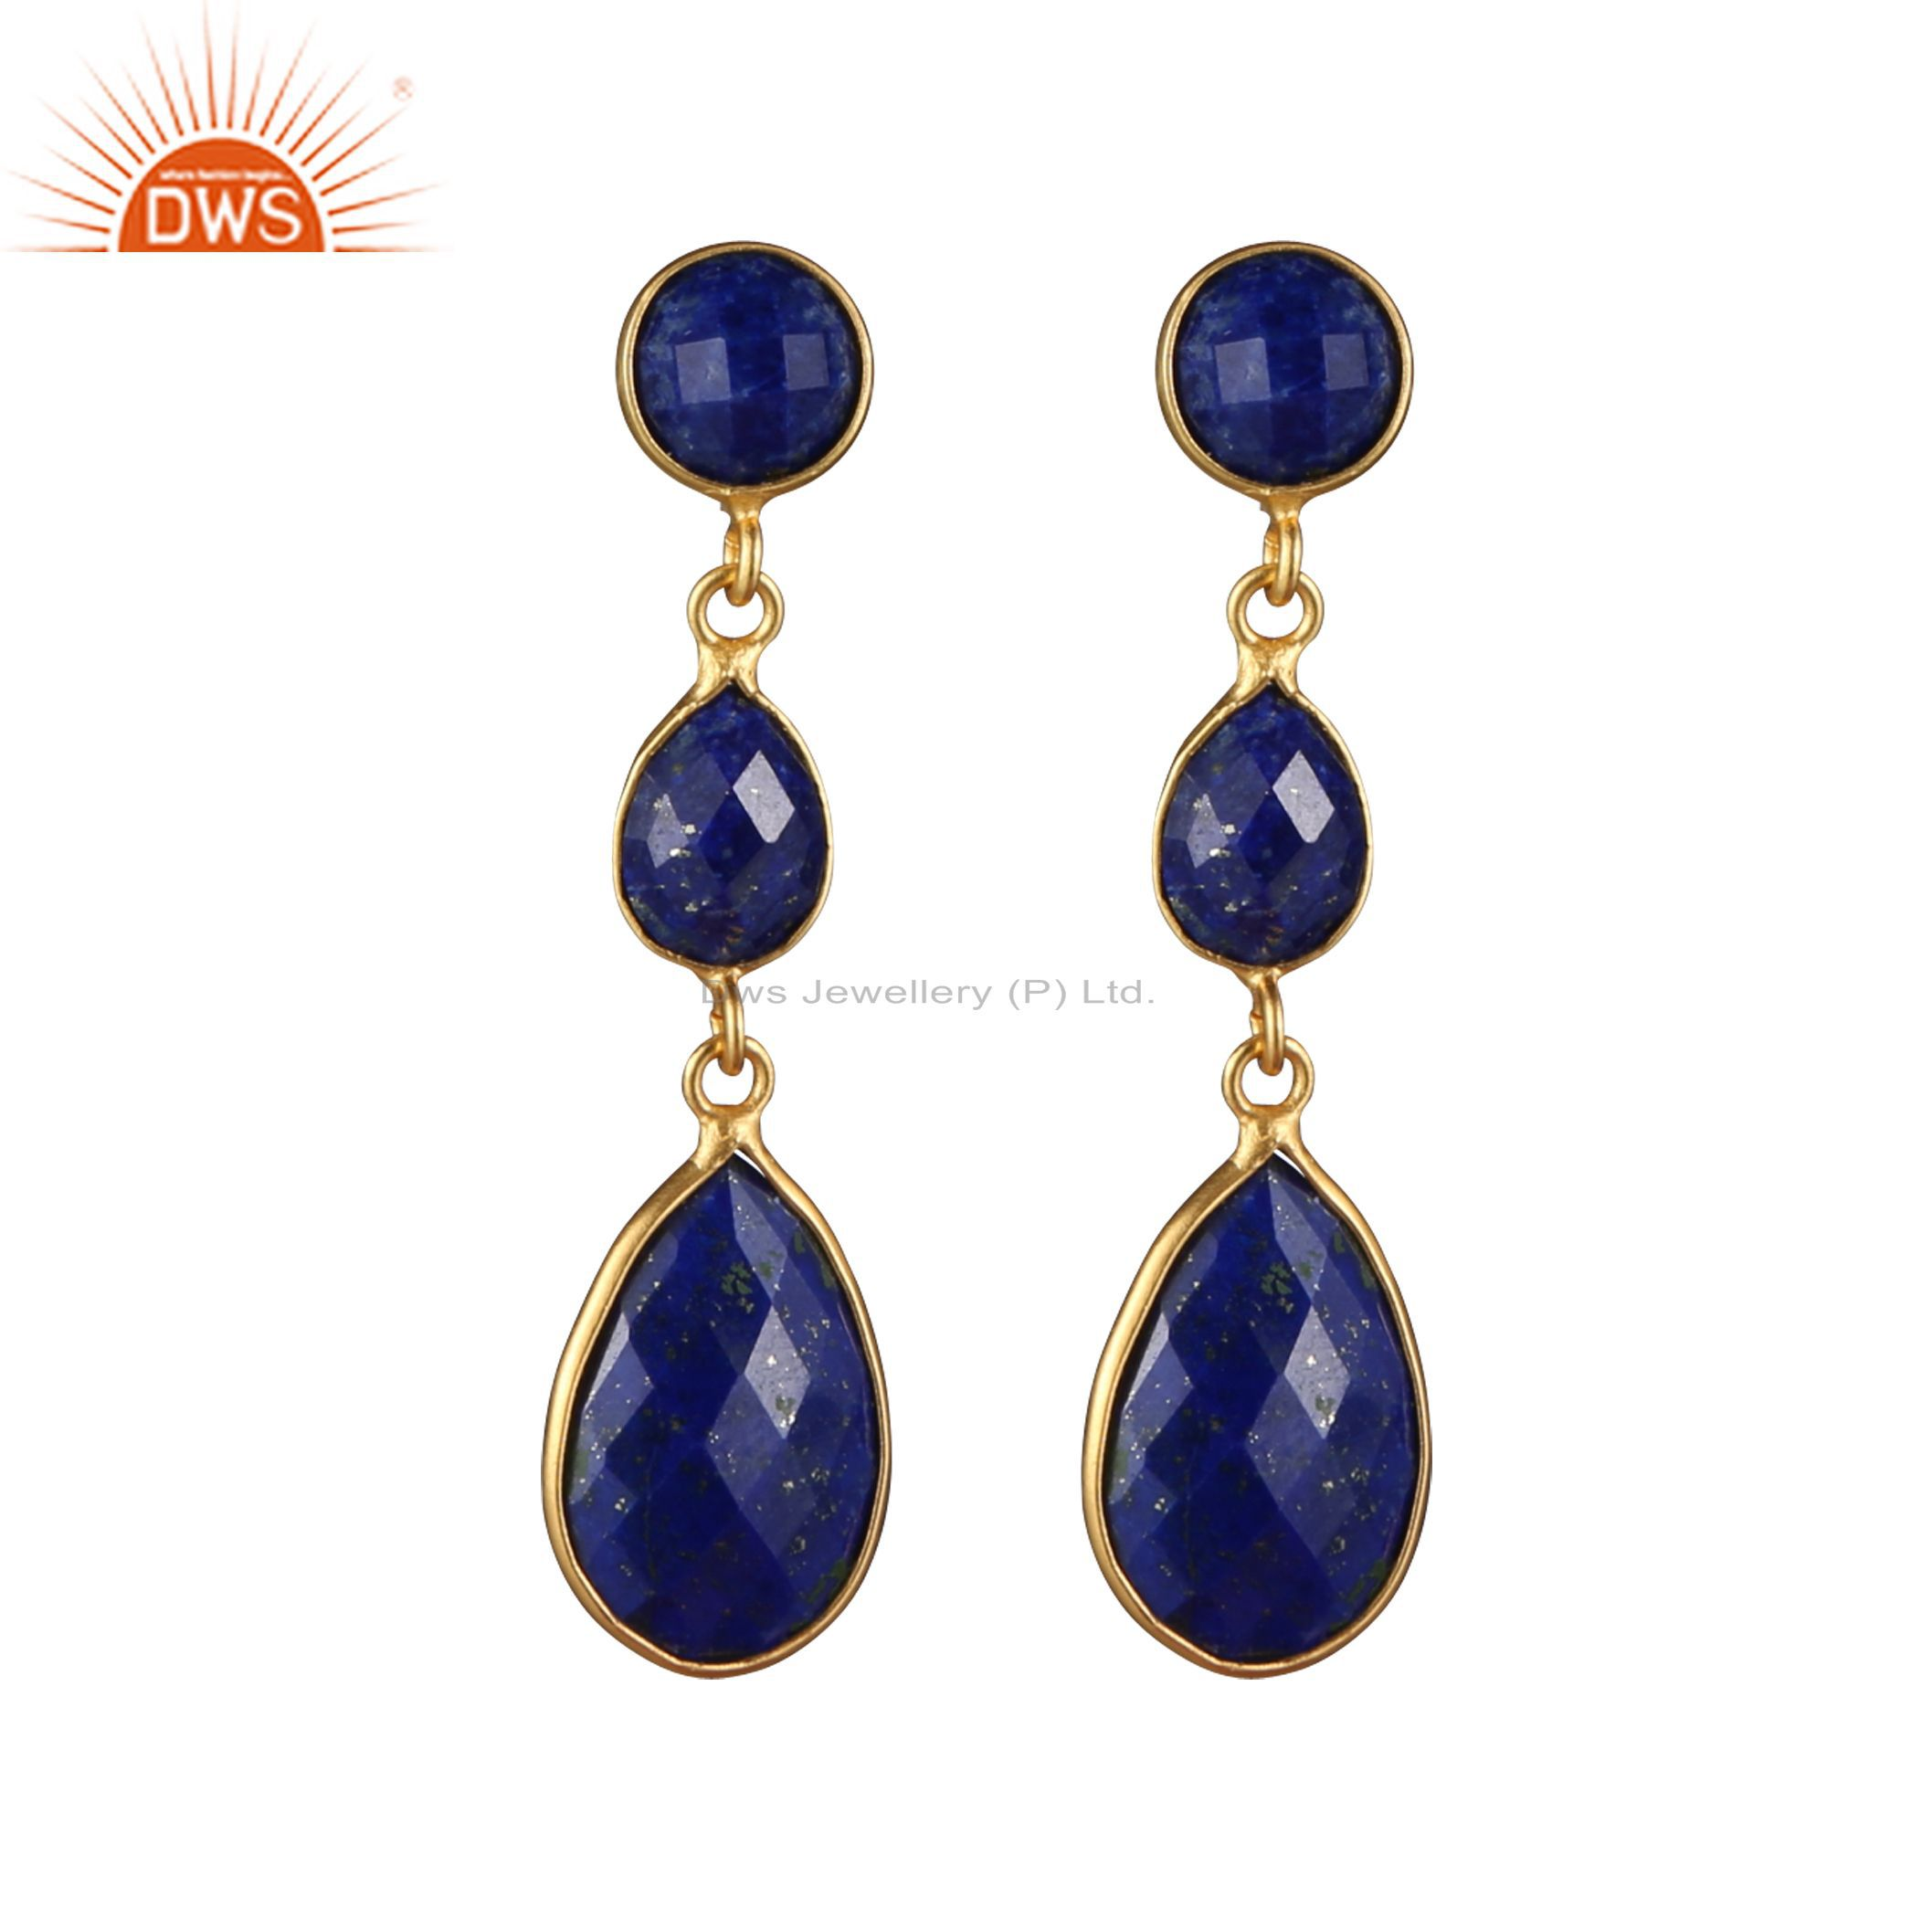 18K Yellow Gold Plated Sterling Silver Lapis Lazuli Triple Bezel Dangle Earrings